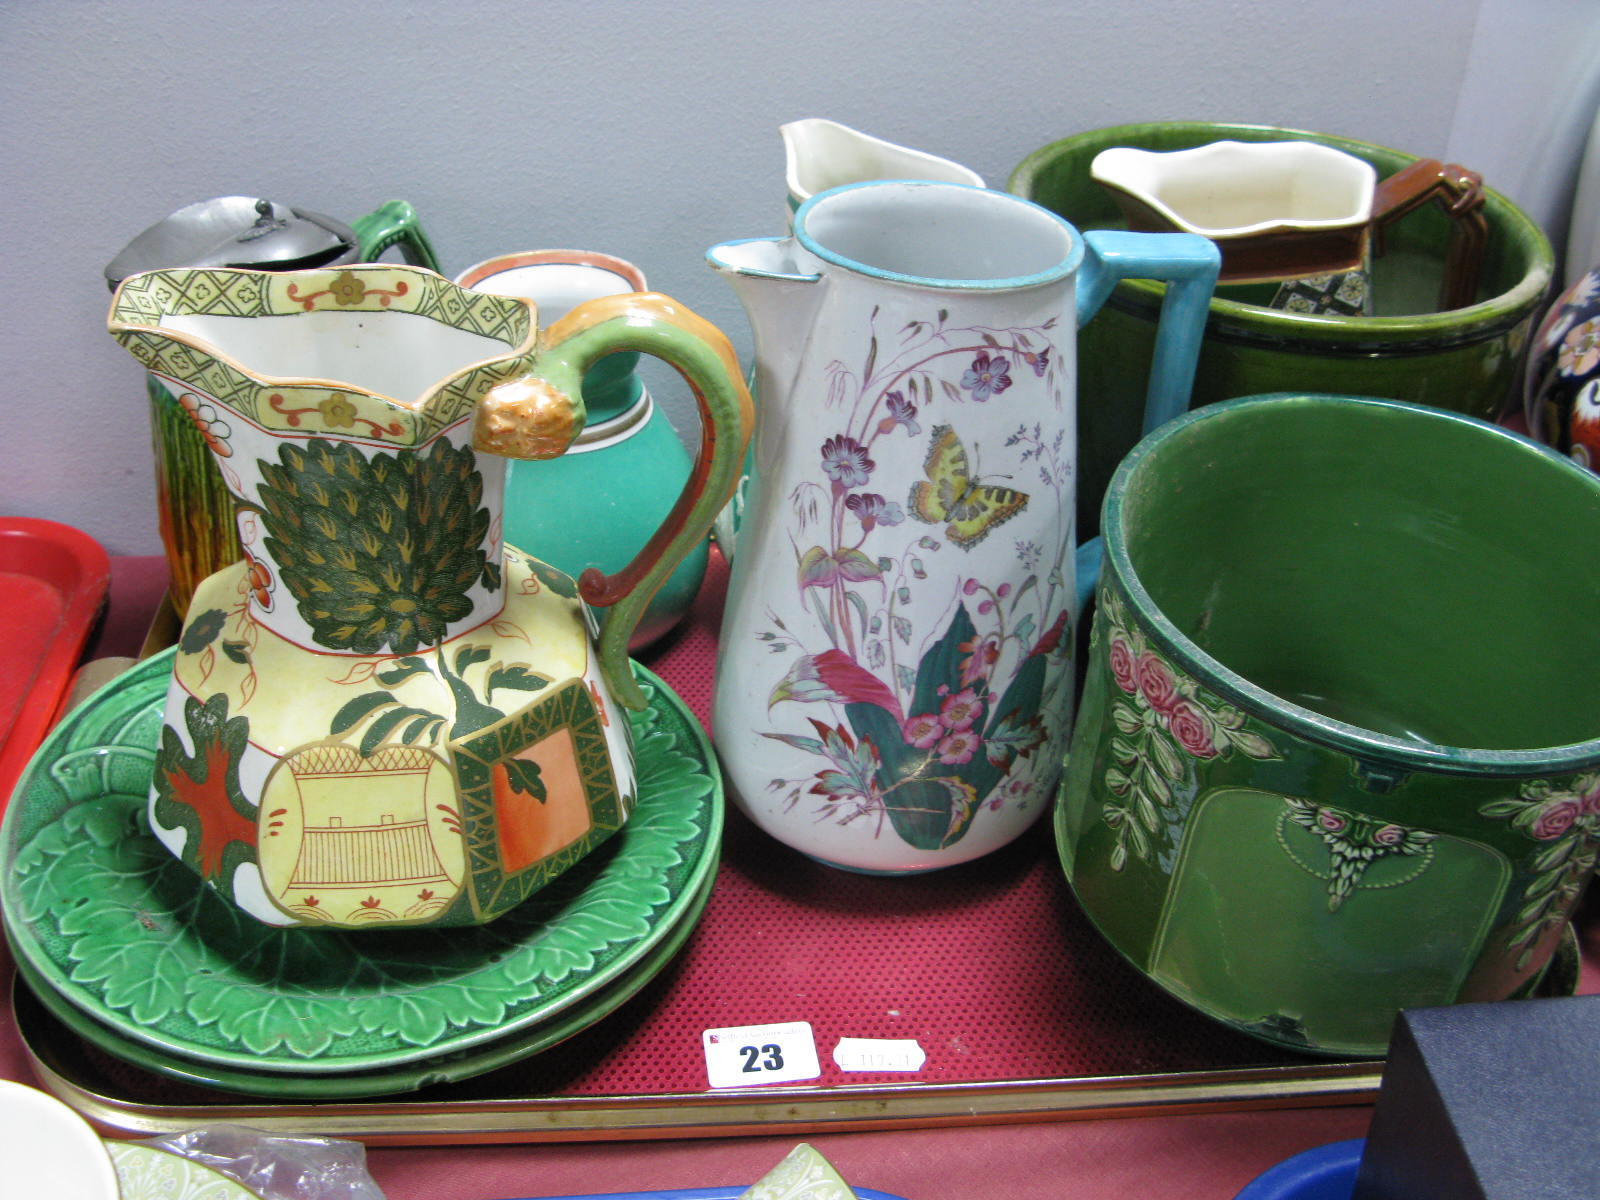 Lot 23 - Bretby and Eichwald Jardinieres, Wedgwood leaf moulded plates, Royal Doulton and other jugs:- One